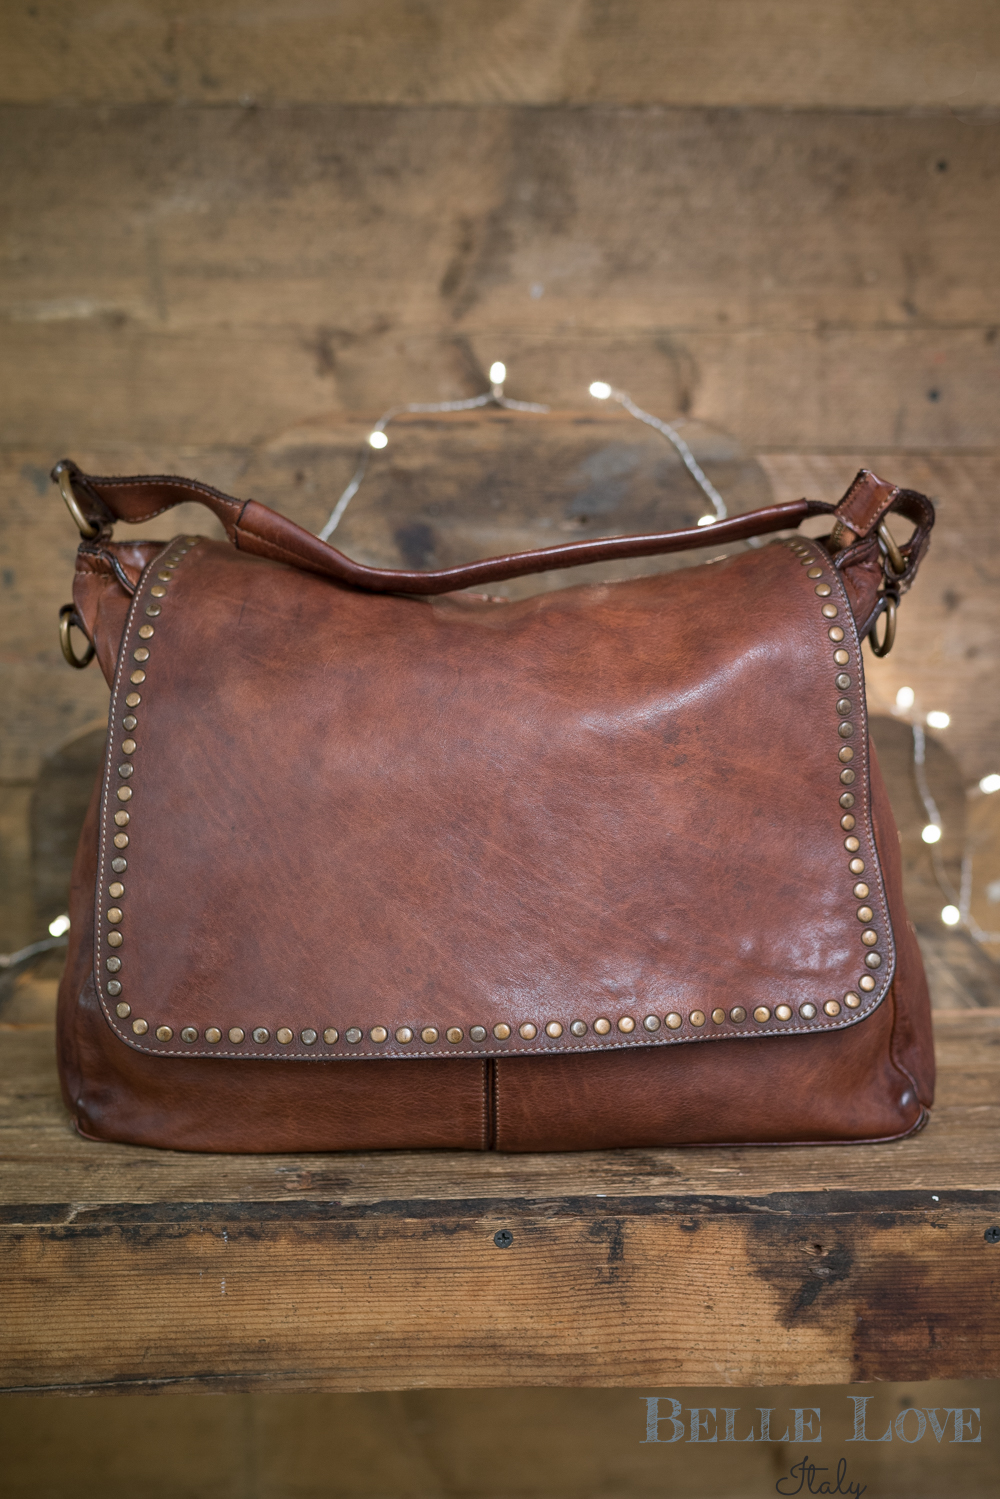 Belle Love Italy Tanned Leather Messenger Bag